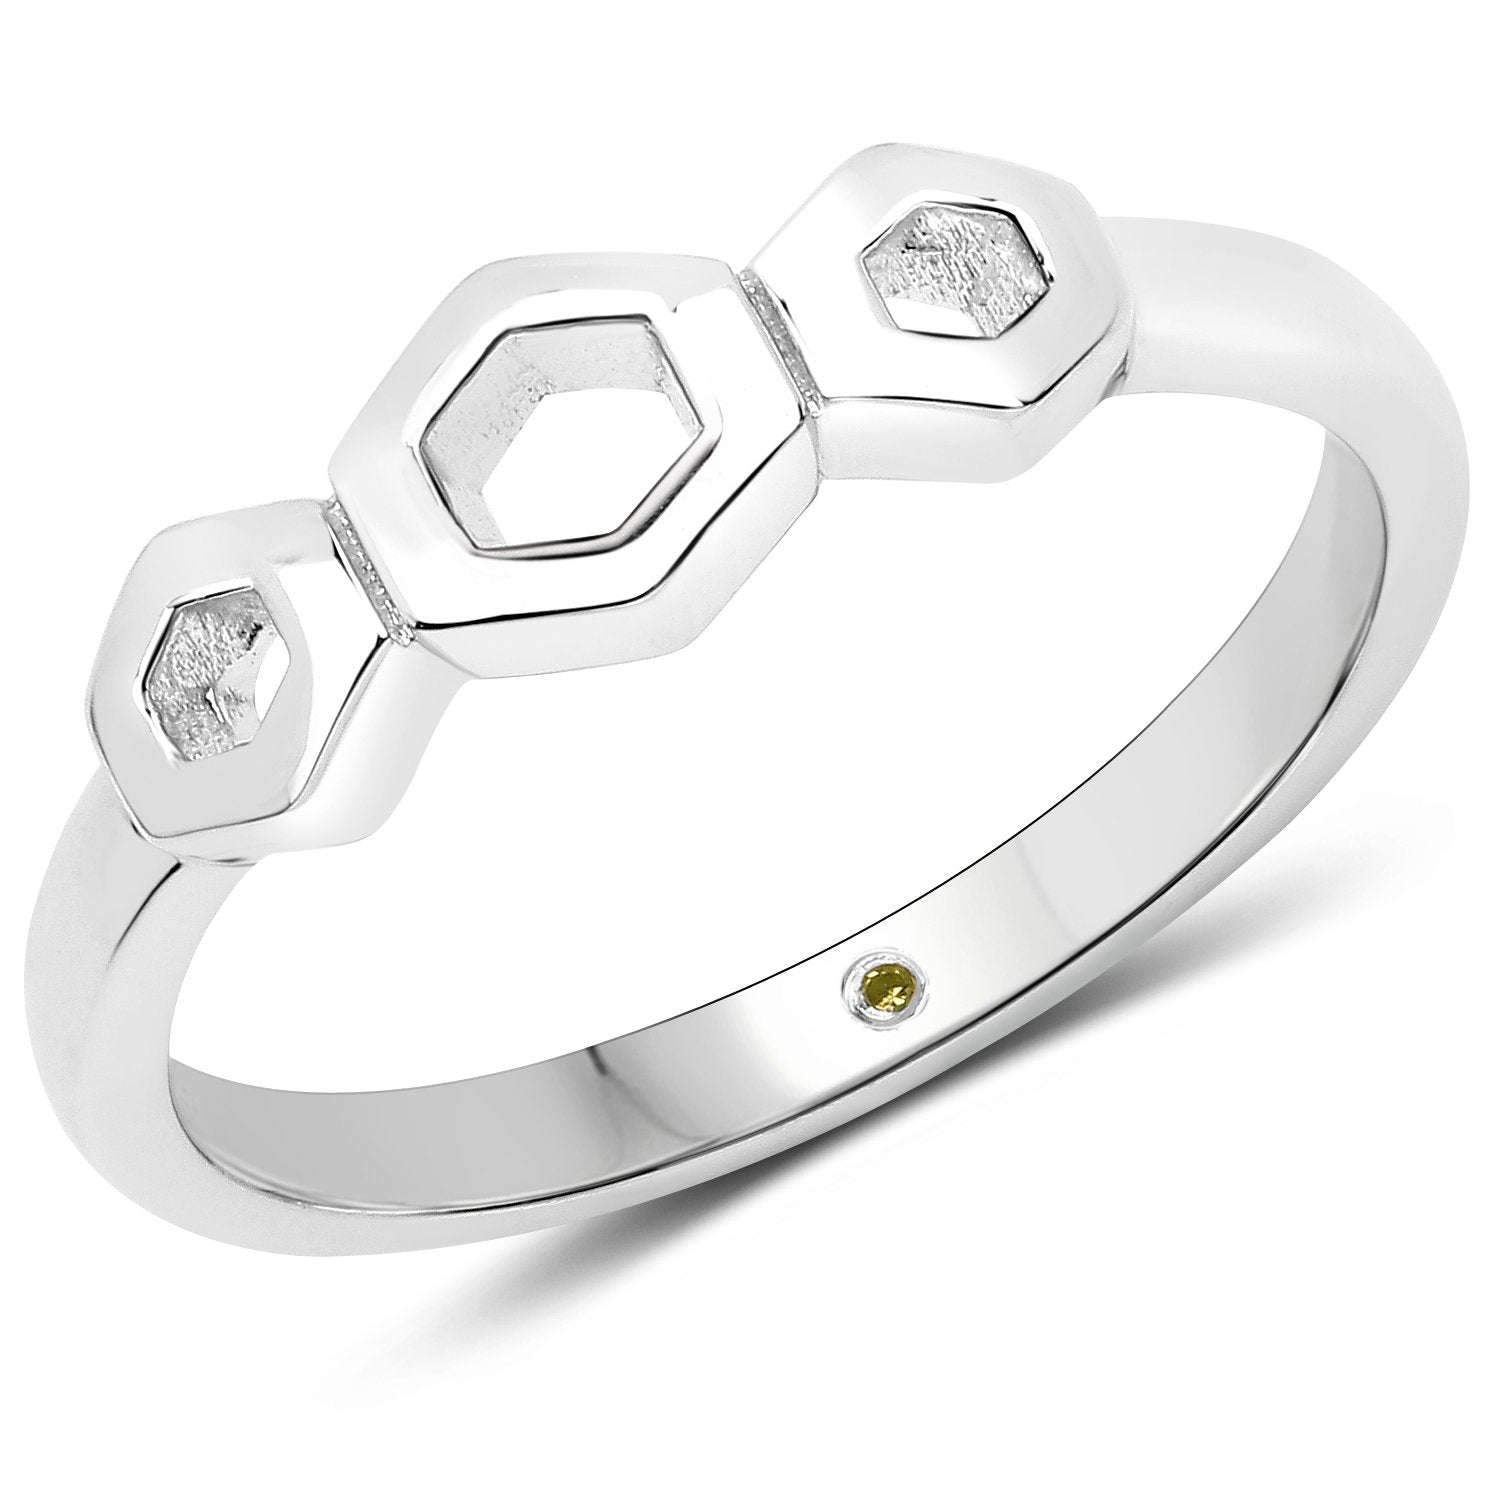 LoveHuang 0.01 Carats Genuine Yellow Diamond (I-J, I2-I3) Minimalist Ring Solid .925 Sterling Silver With Rhodium Plating